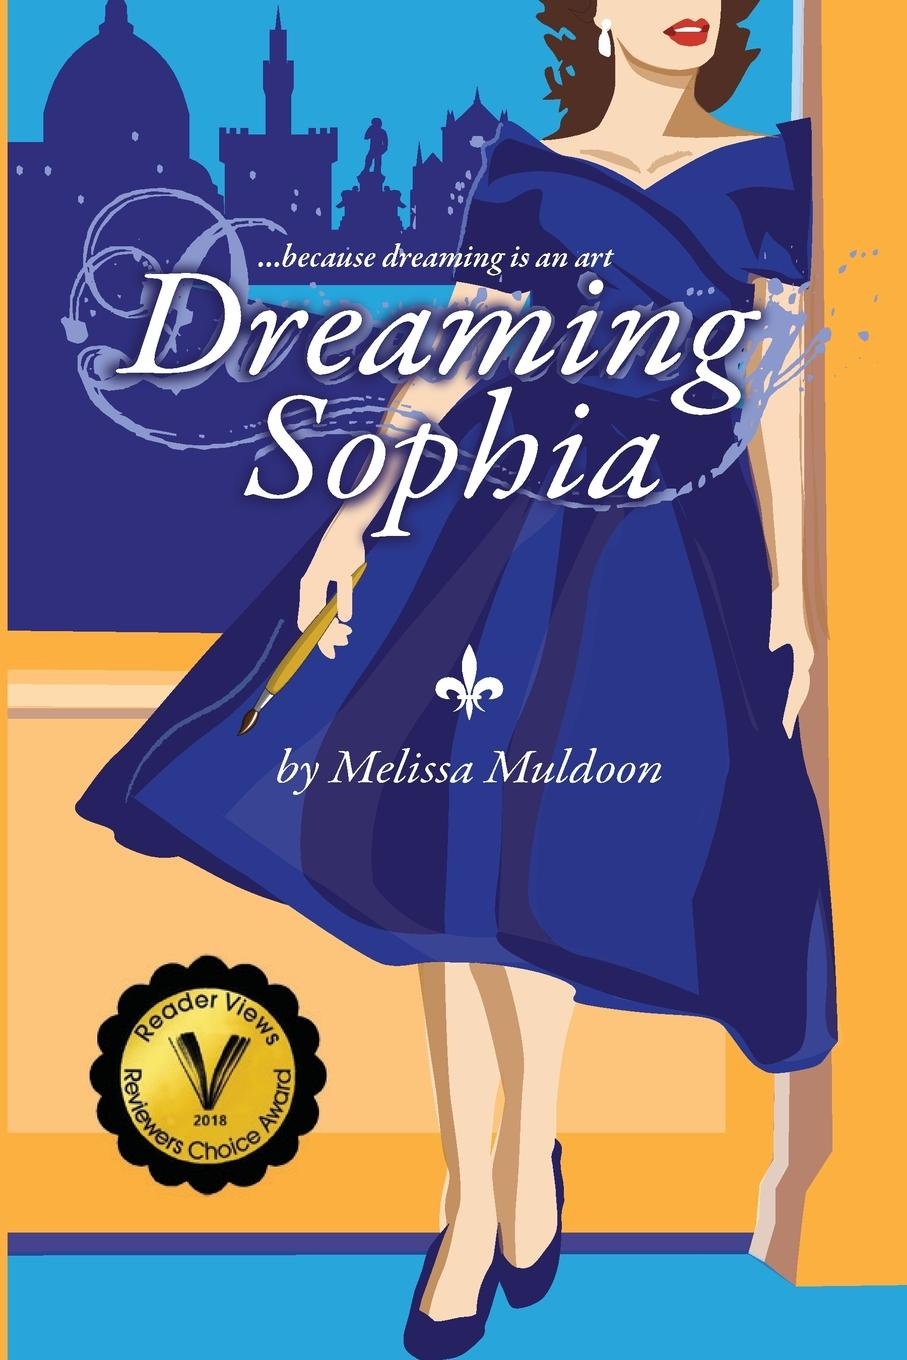 Фото - Muldoon Melissa Dreaming Sophia. Because Dreaming is an art андрэ рье andre rieu dreaming